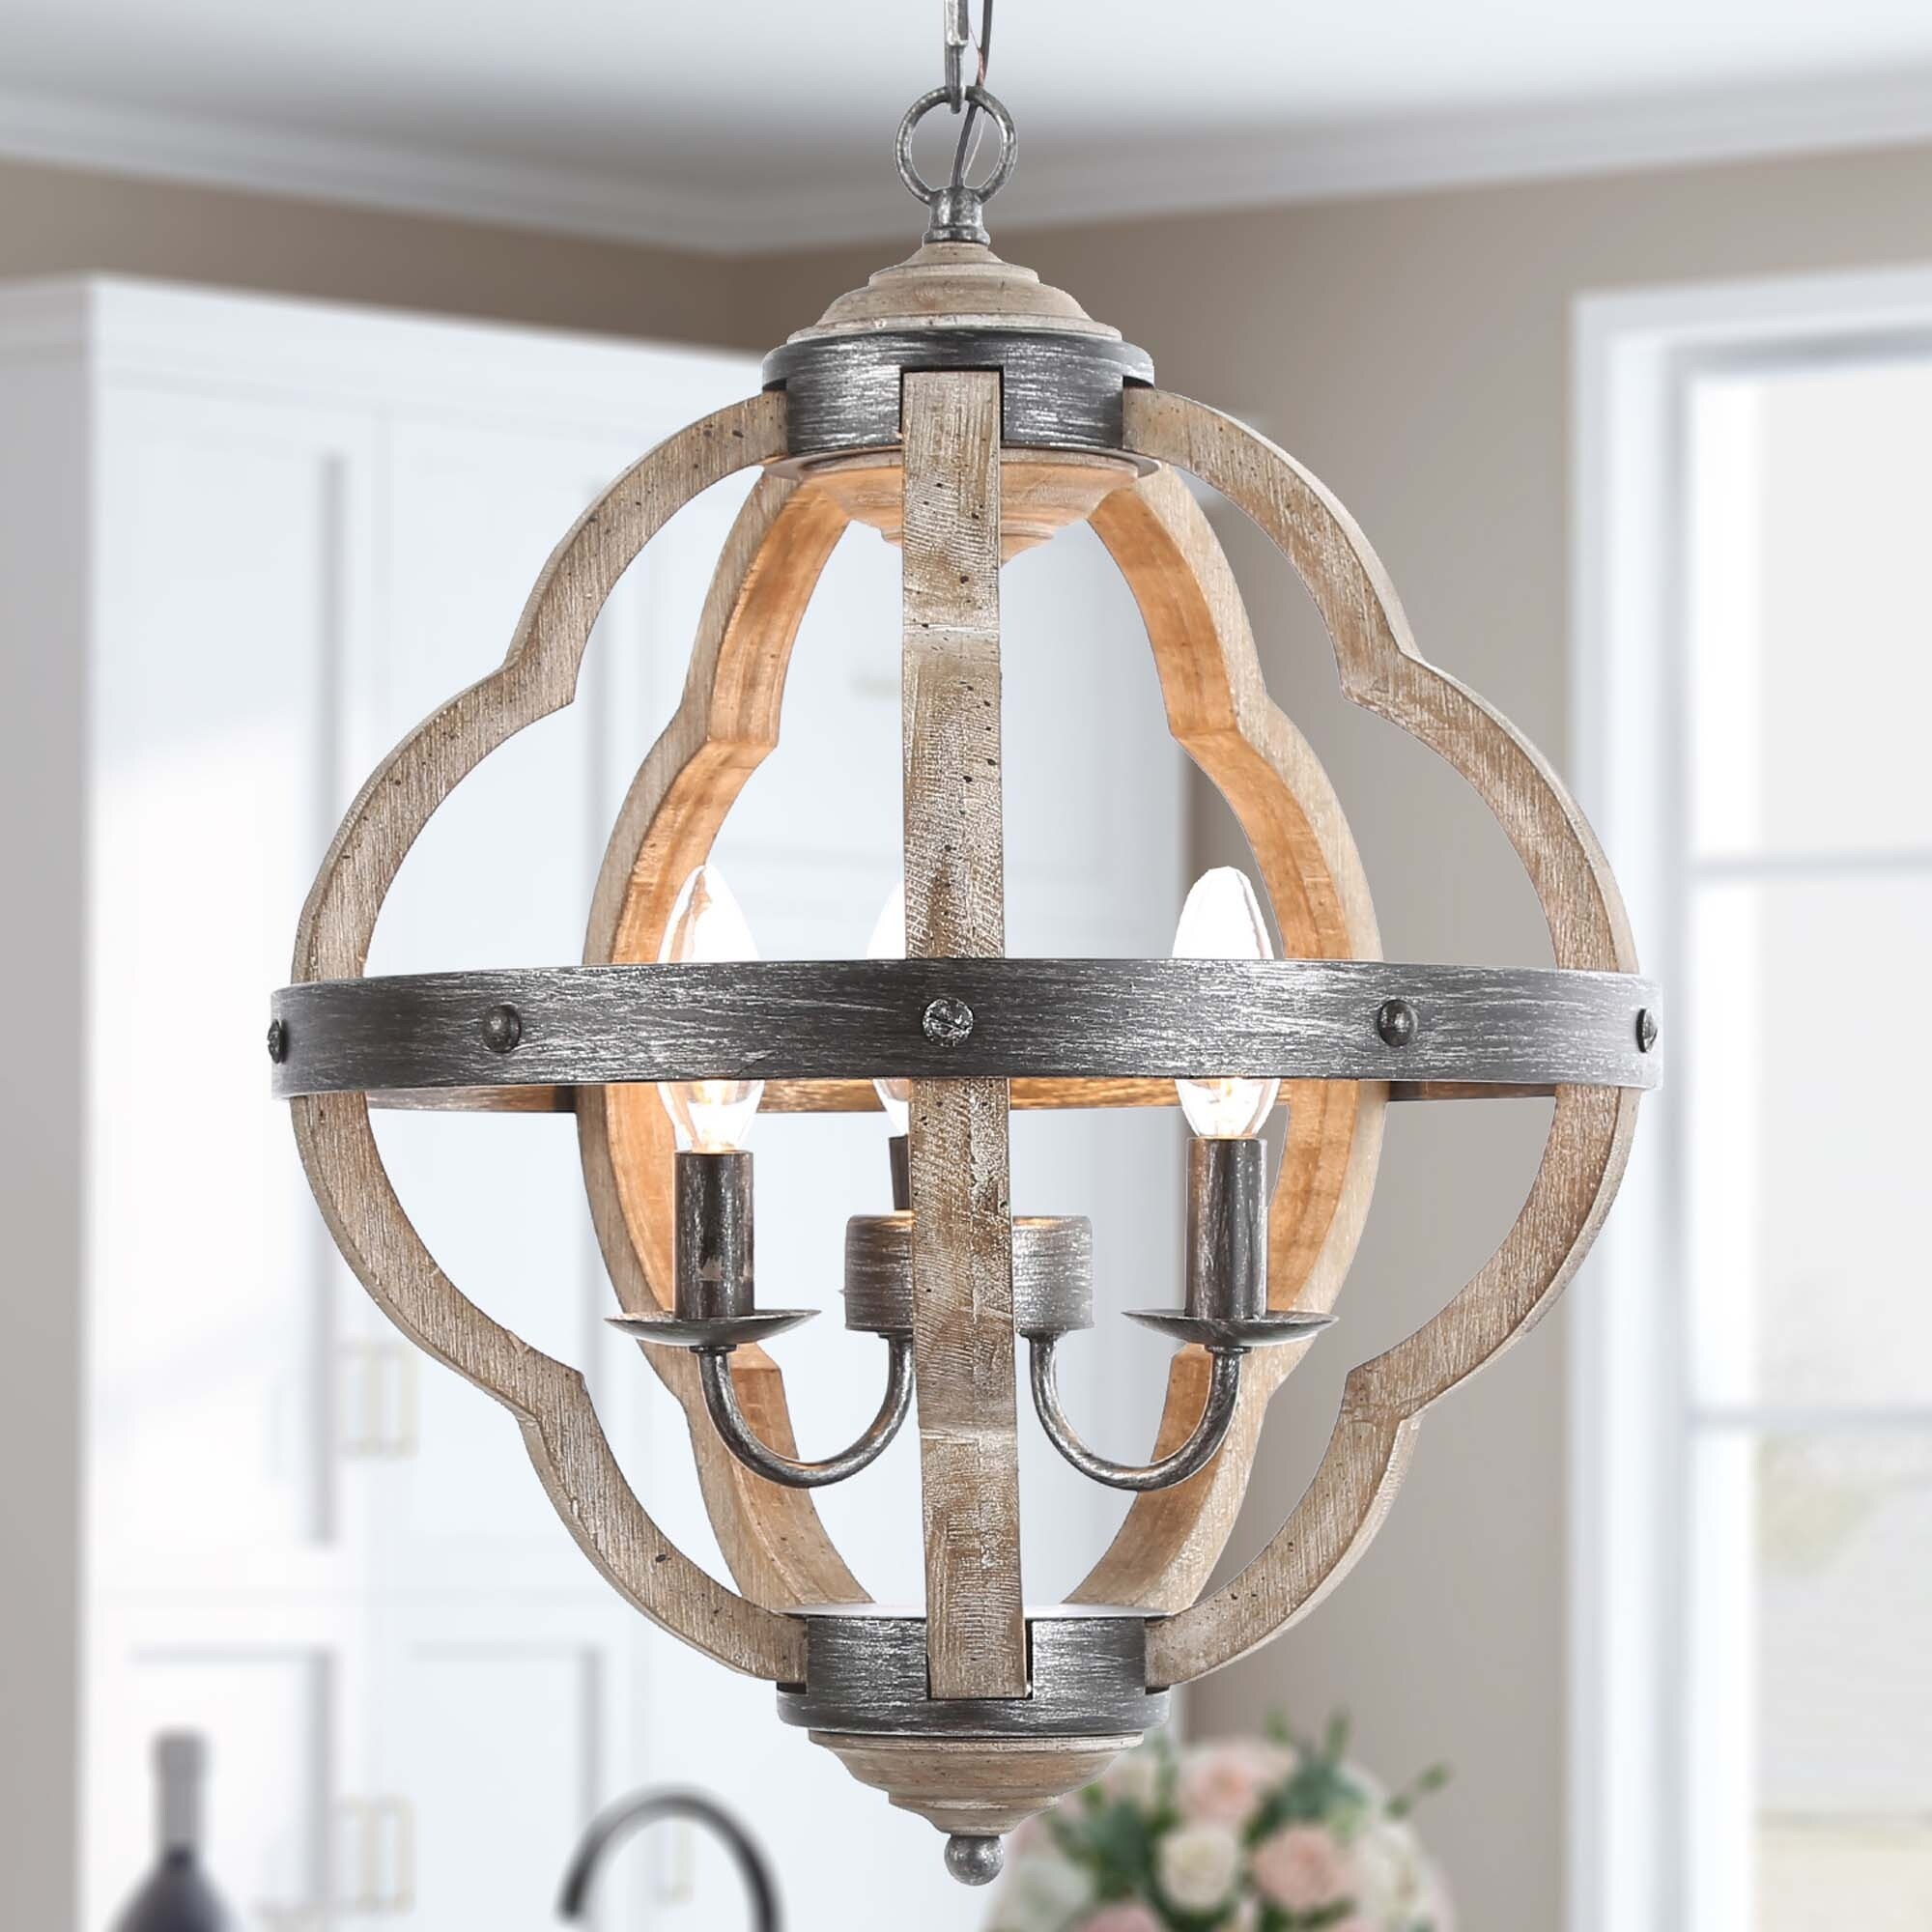 Farmhouse Lantern Candlestick Chandelier 3 Lights Hanging Ceiling Lighting For Dining Room Overstock 29187513 W15 X H19 Taupe Lantern